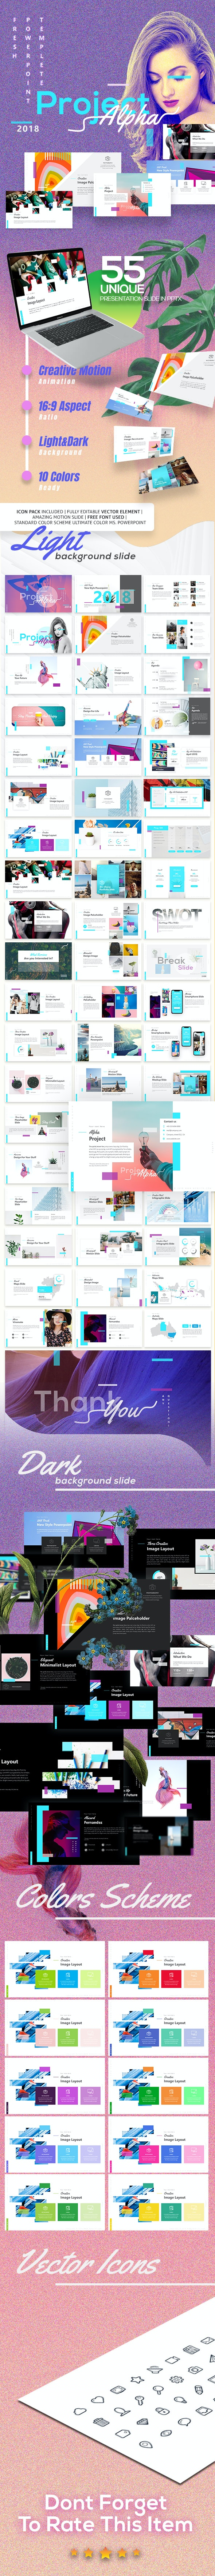 Project Alpha - Creative Powerpoint Template - Creative PowerPoint Templates